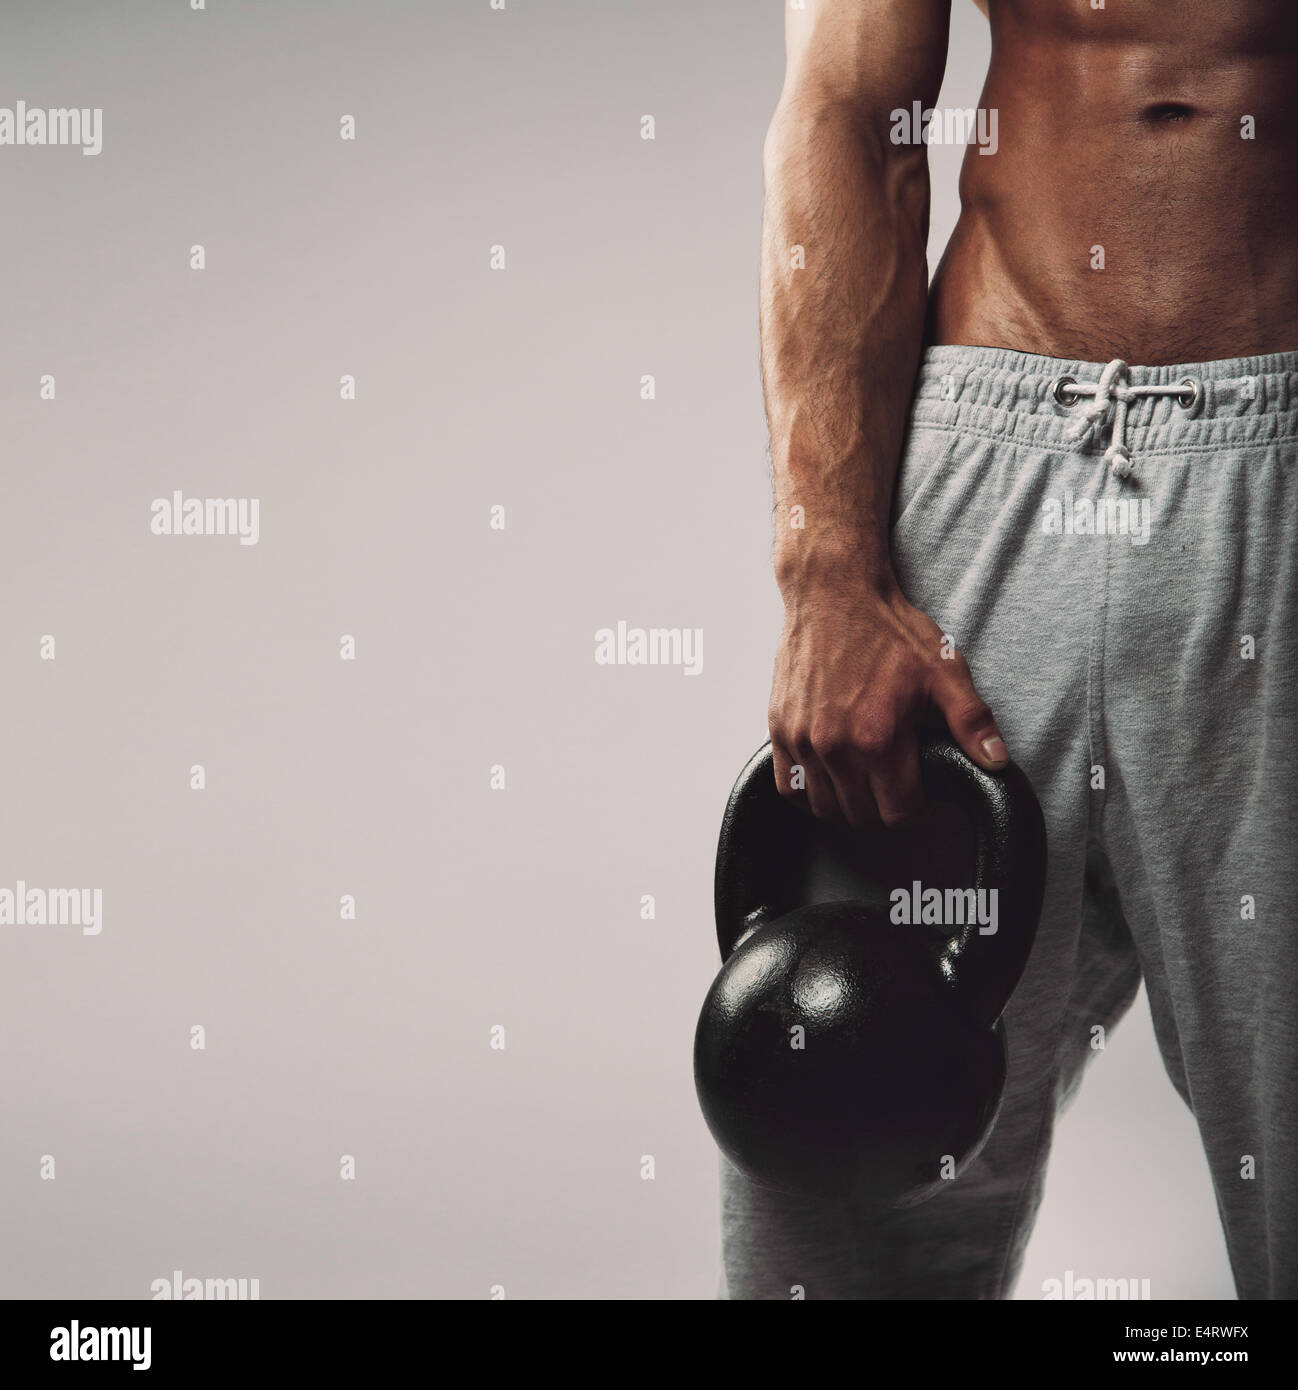 Close up image of young man's hand holding kettlebell. Crossfit workout concept with copyspace on grey background. - Stock Image